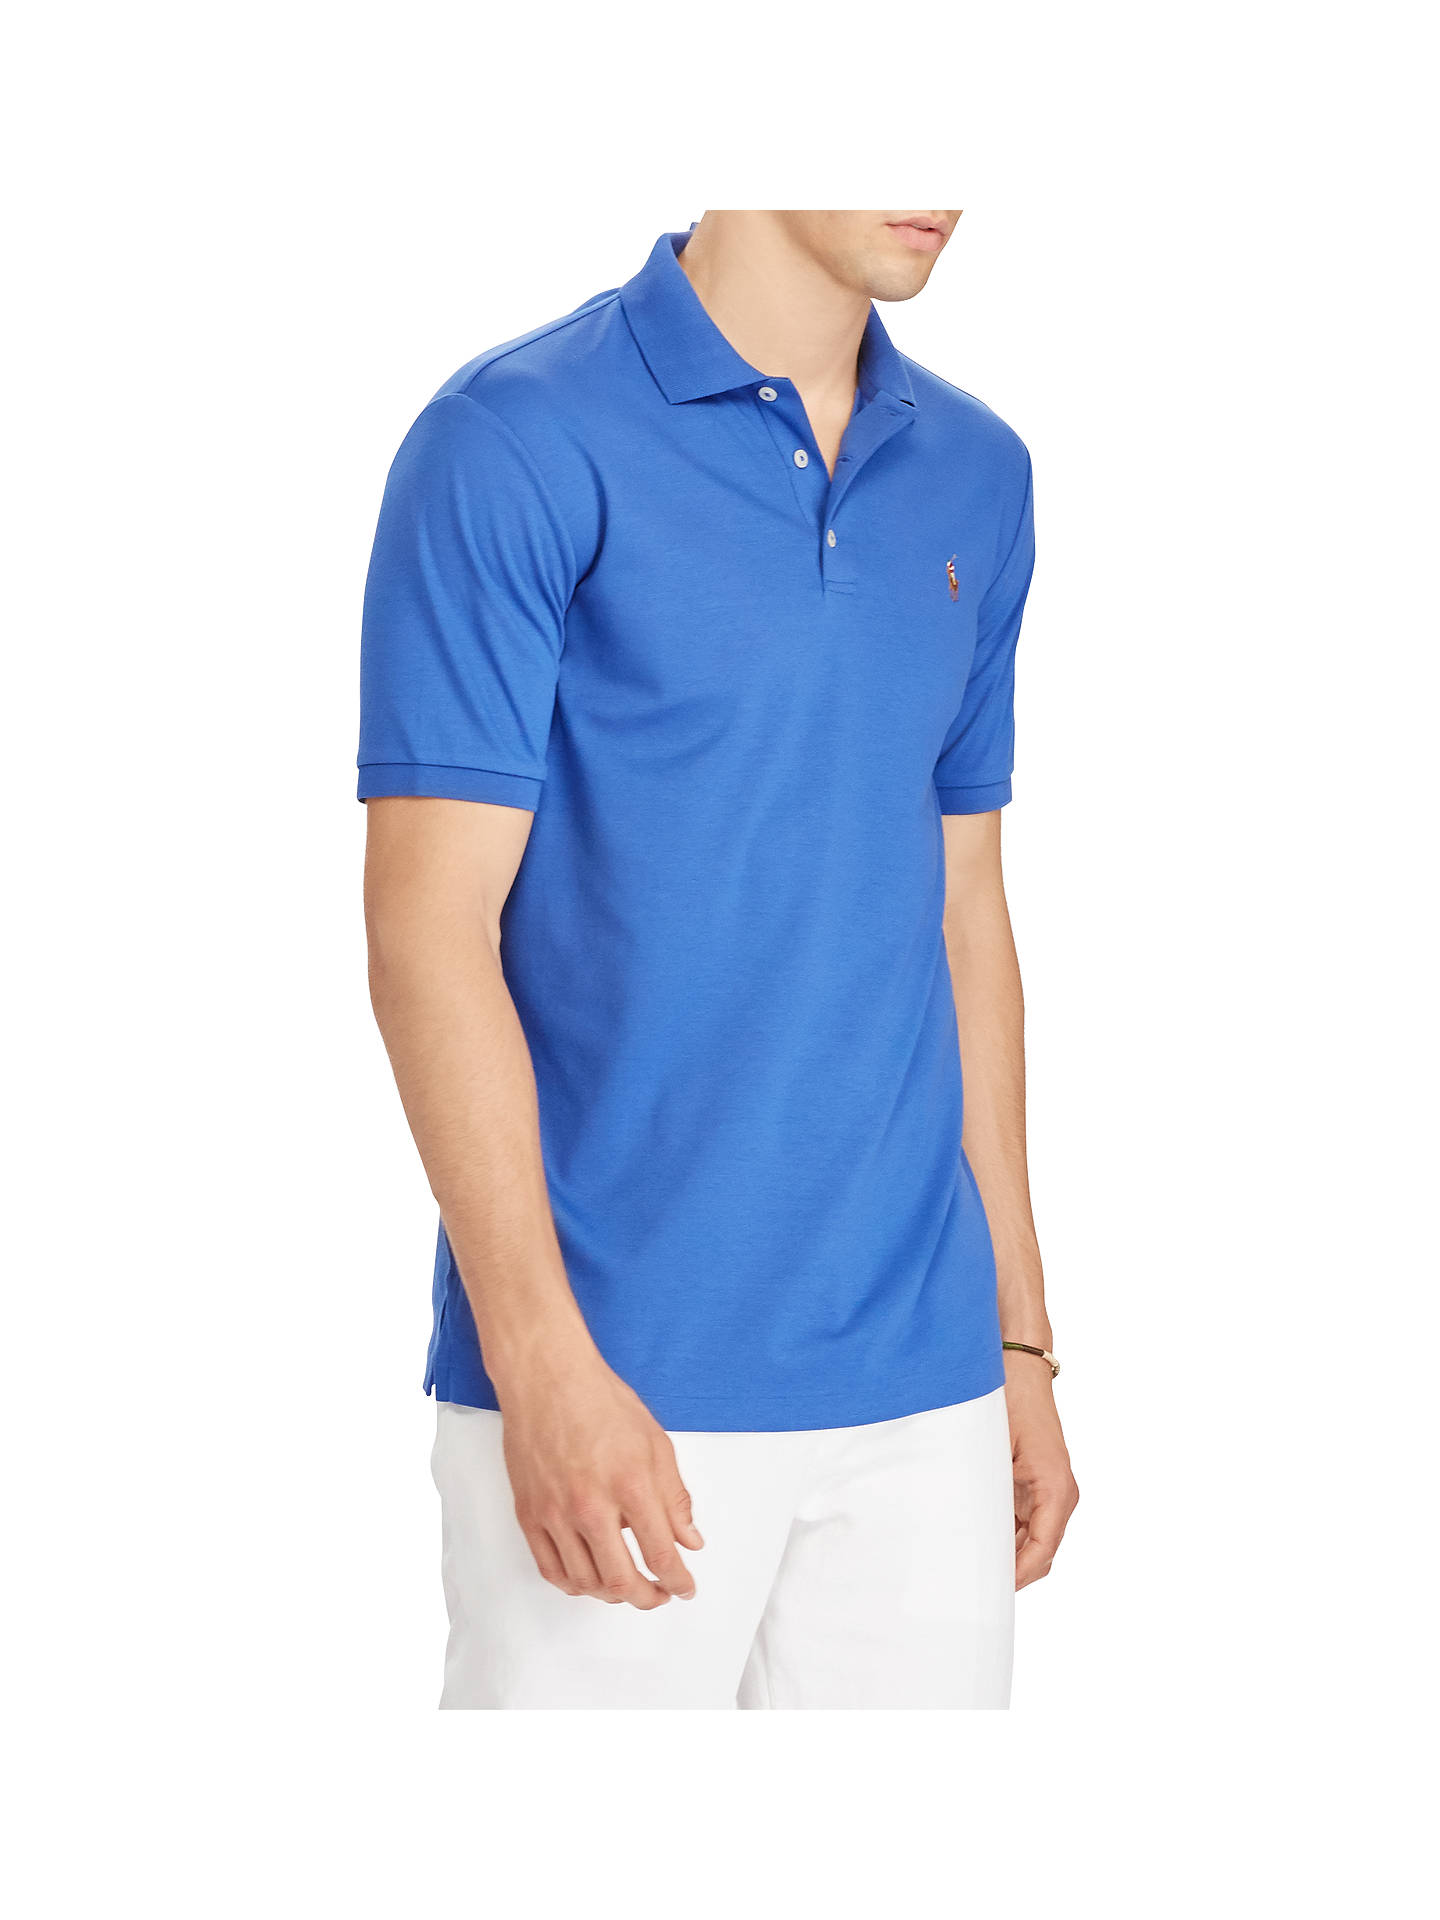 e0ed5333bf Polo Ralph Lauren Slim Fit Soft Touch Polo Shirt at John Lewis ...